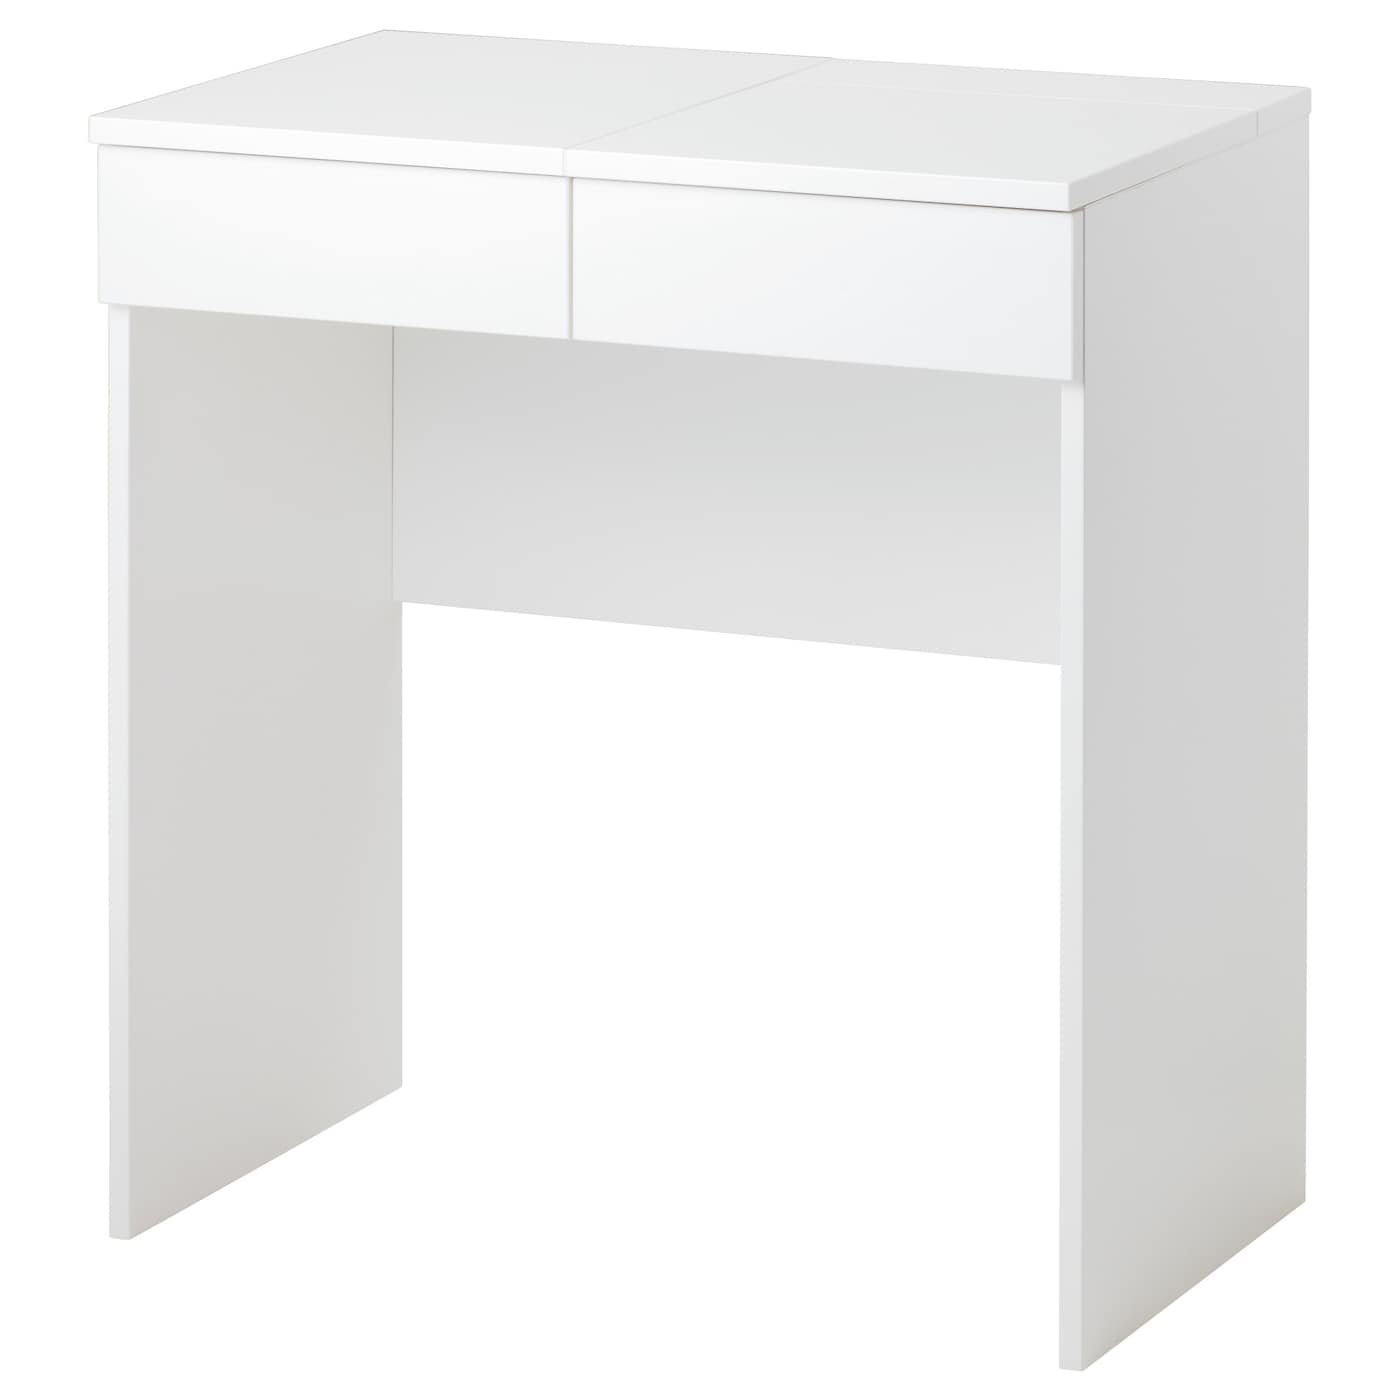 Brimnes dressing table white 70x42 cm ikea - Ikea simulation dressing ...